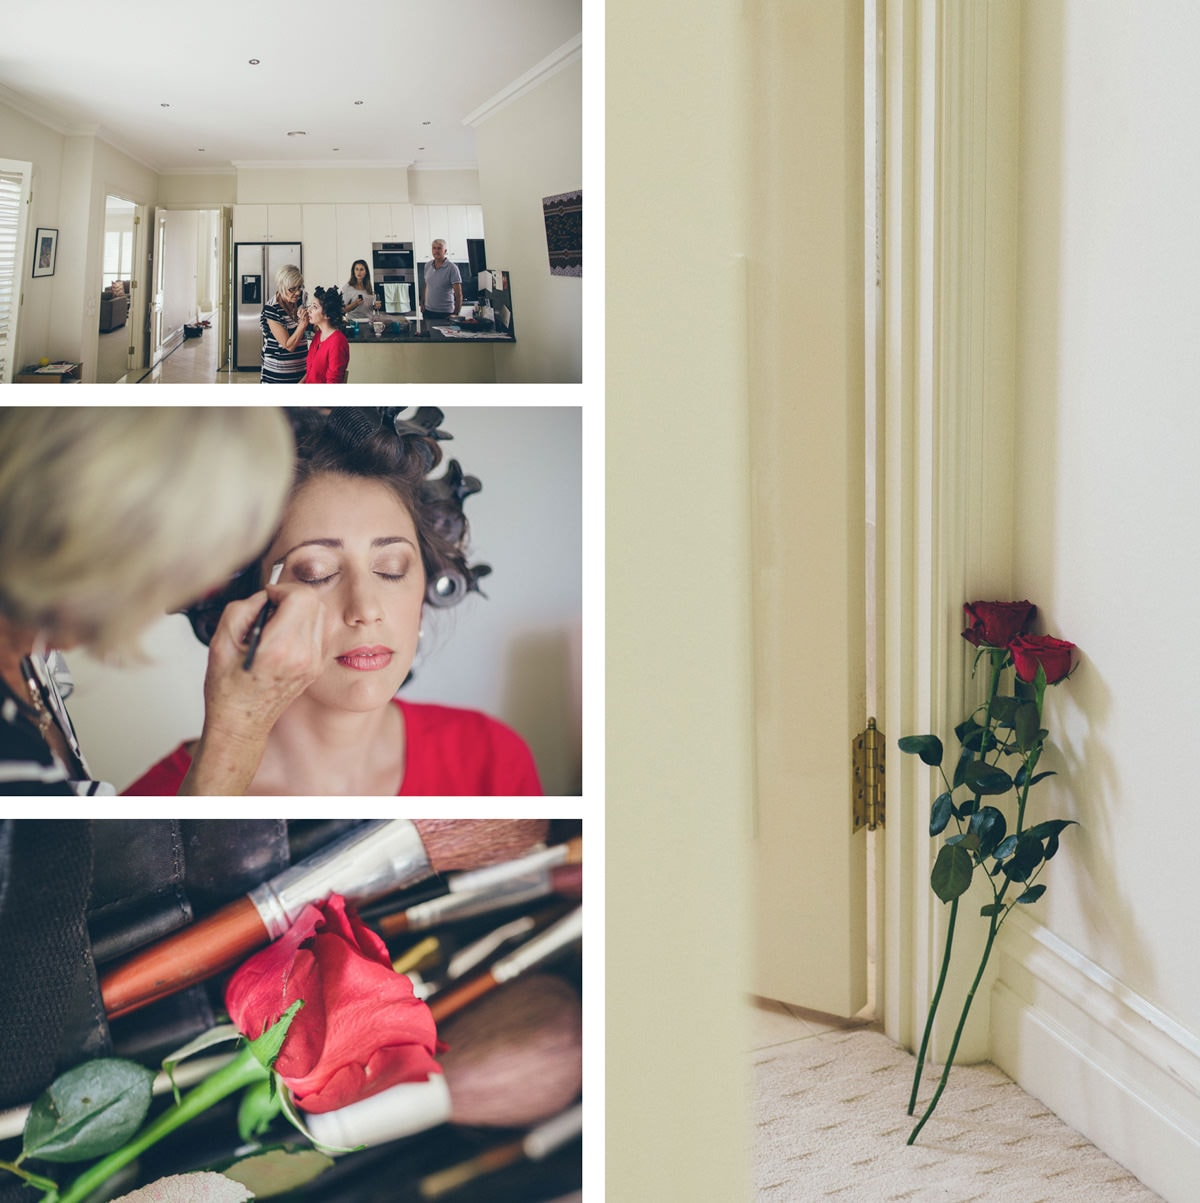 french chic wedding photographer in melbiourne - luxury wedding in melbourne